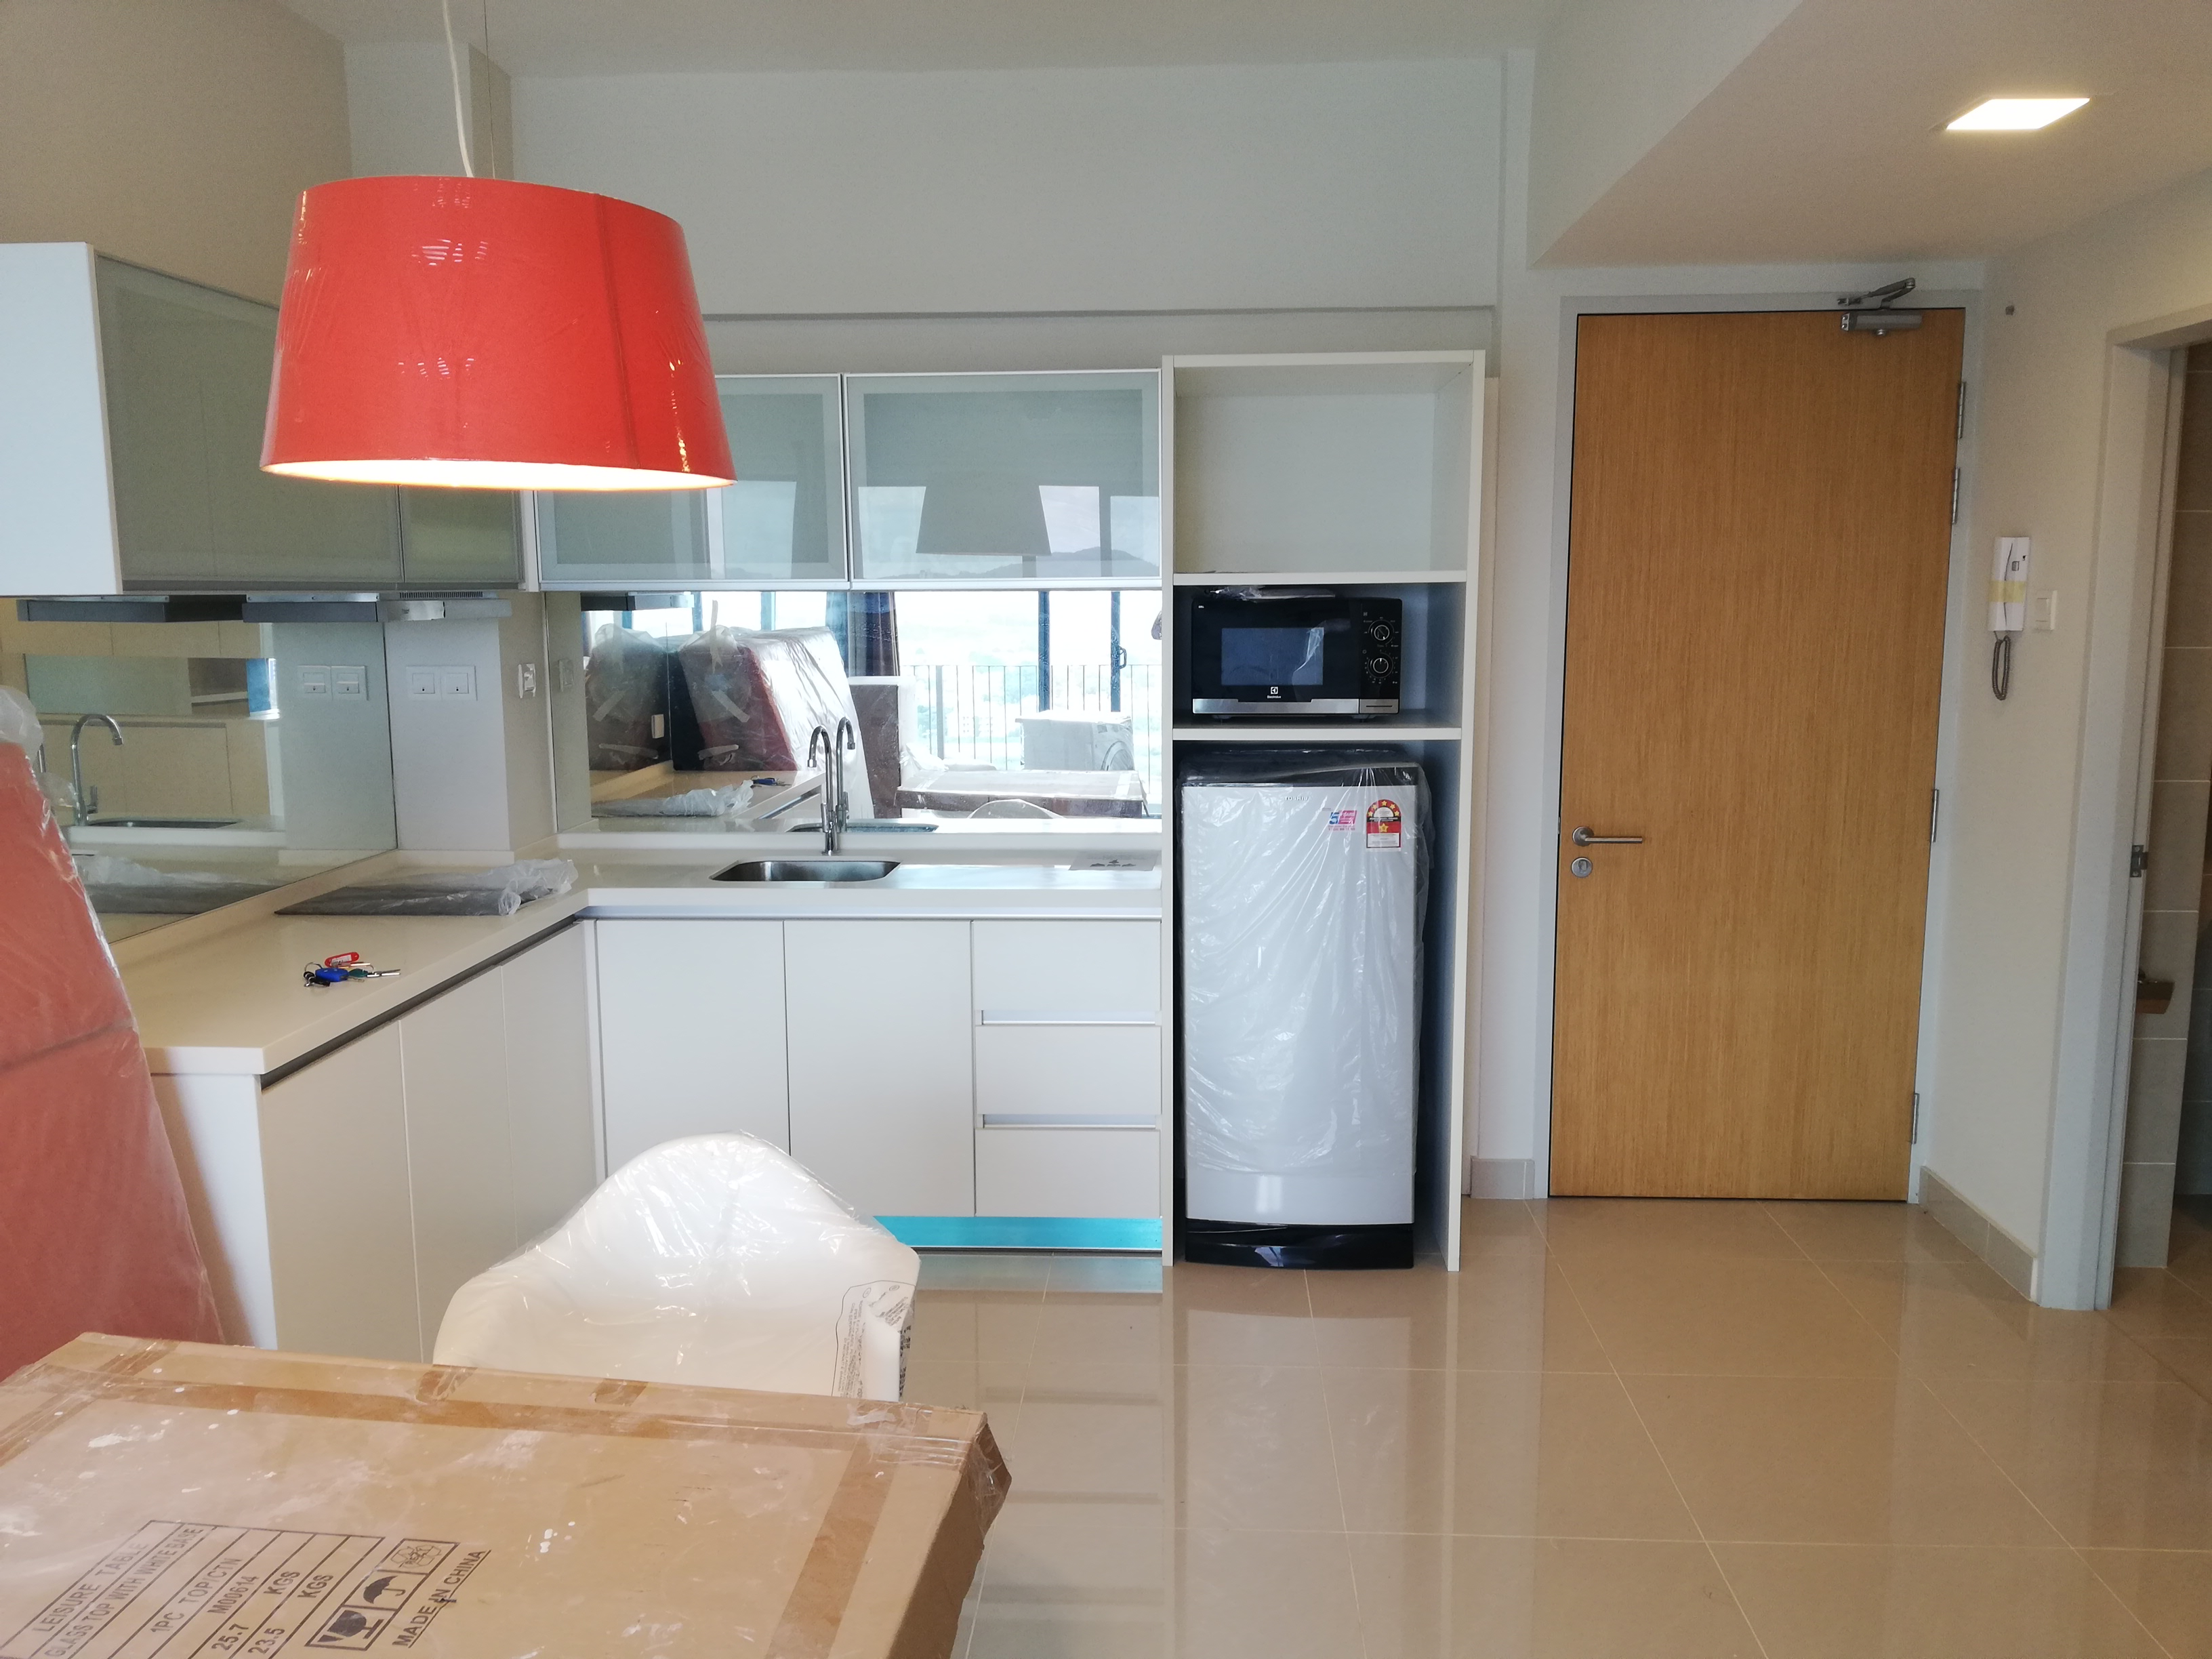 [NEW] KIARA EAST, Taman Mastiara / 700 sq.ft / 2R2B / Fully furnished – RM450,000